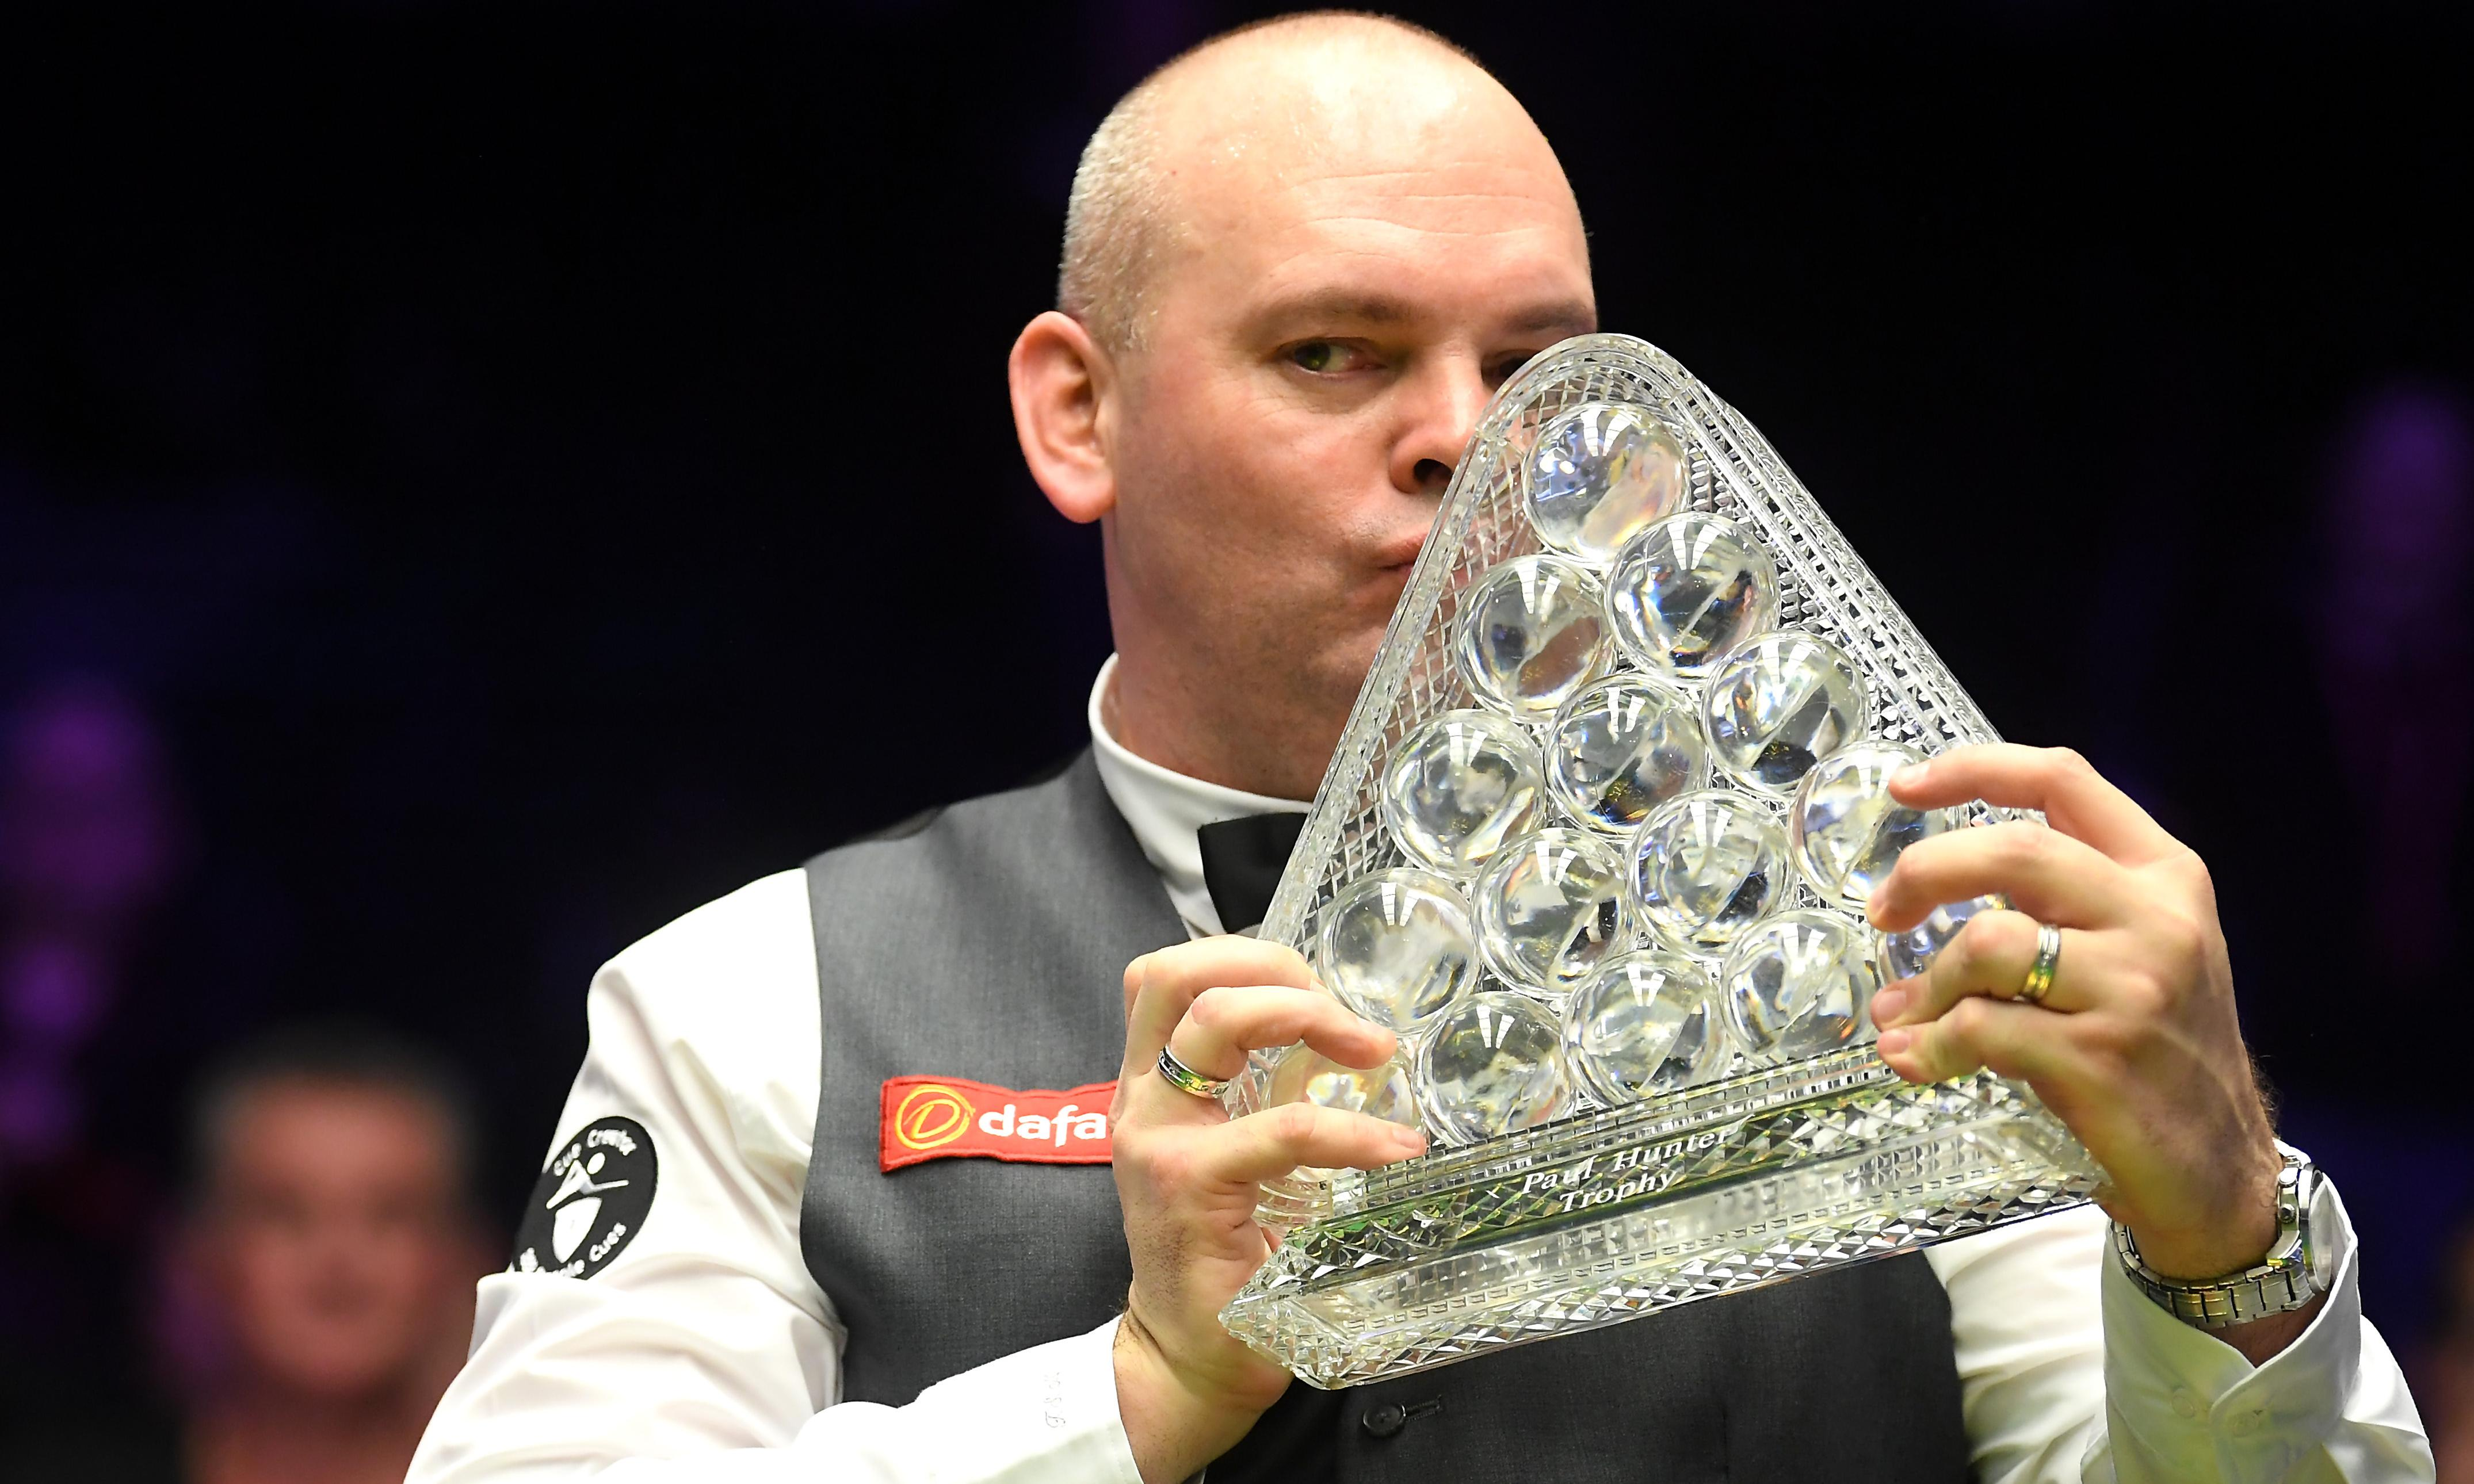 'Whoopee cushion' disrupts final before Stuart Bingham wins Masters snooker